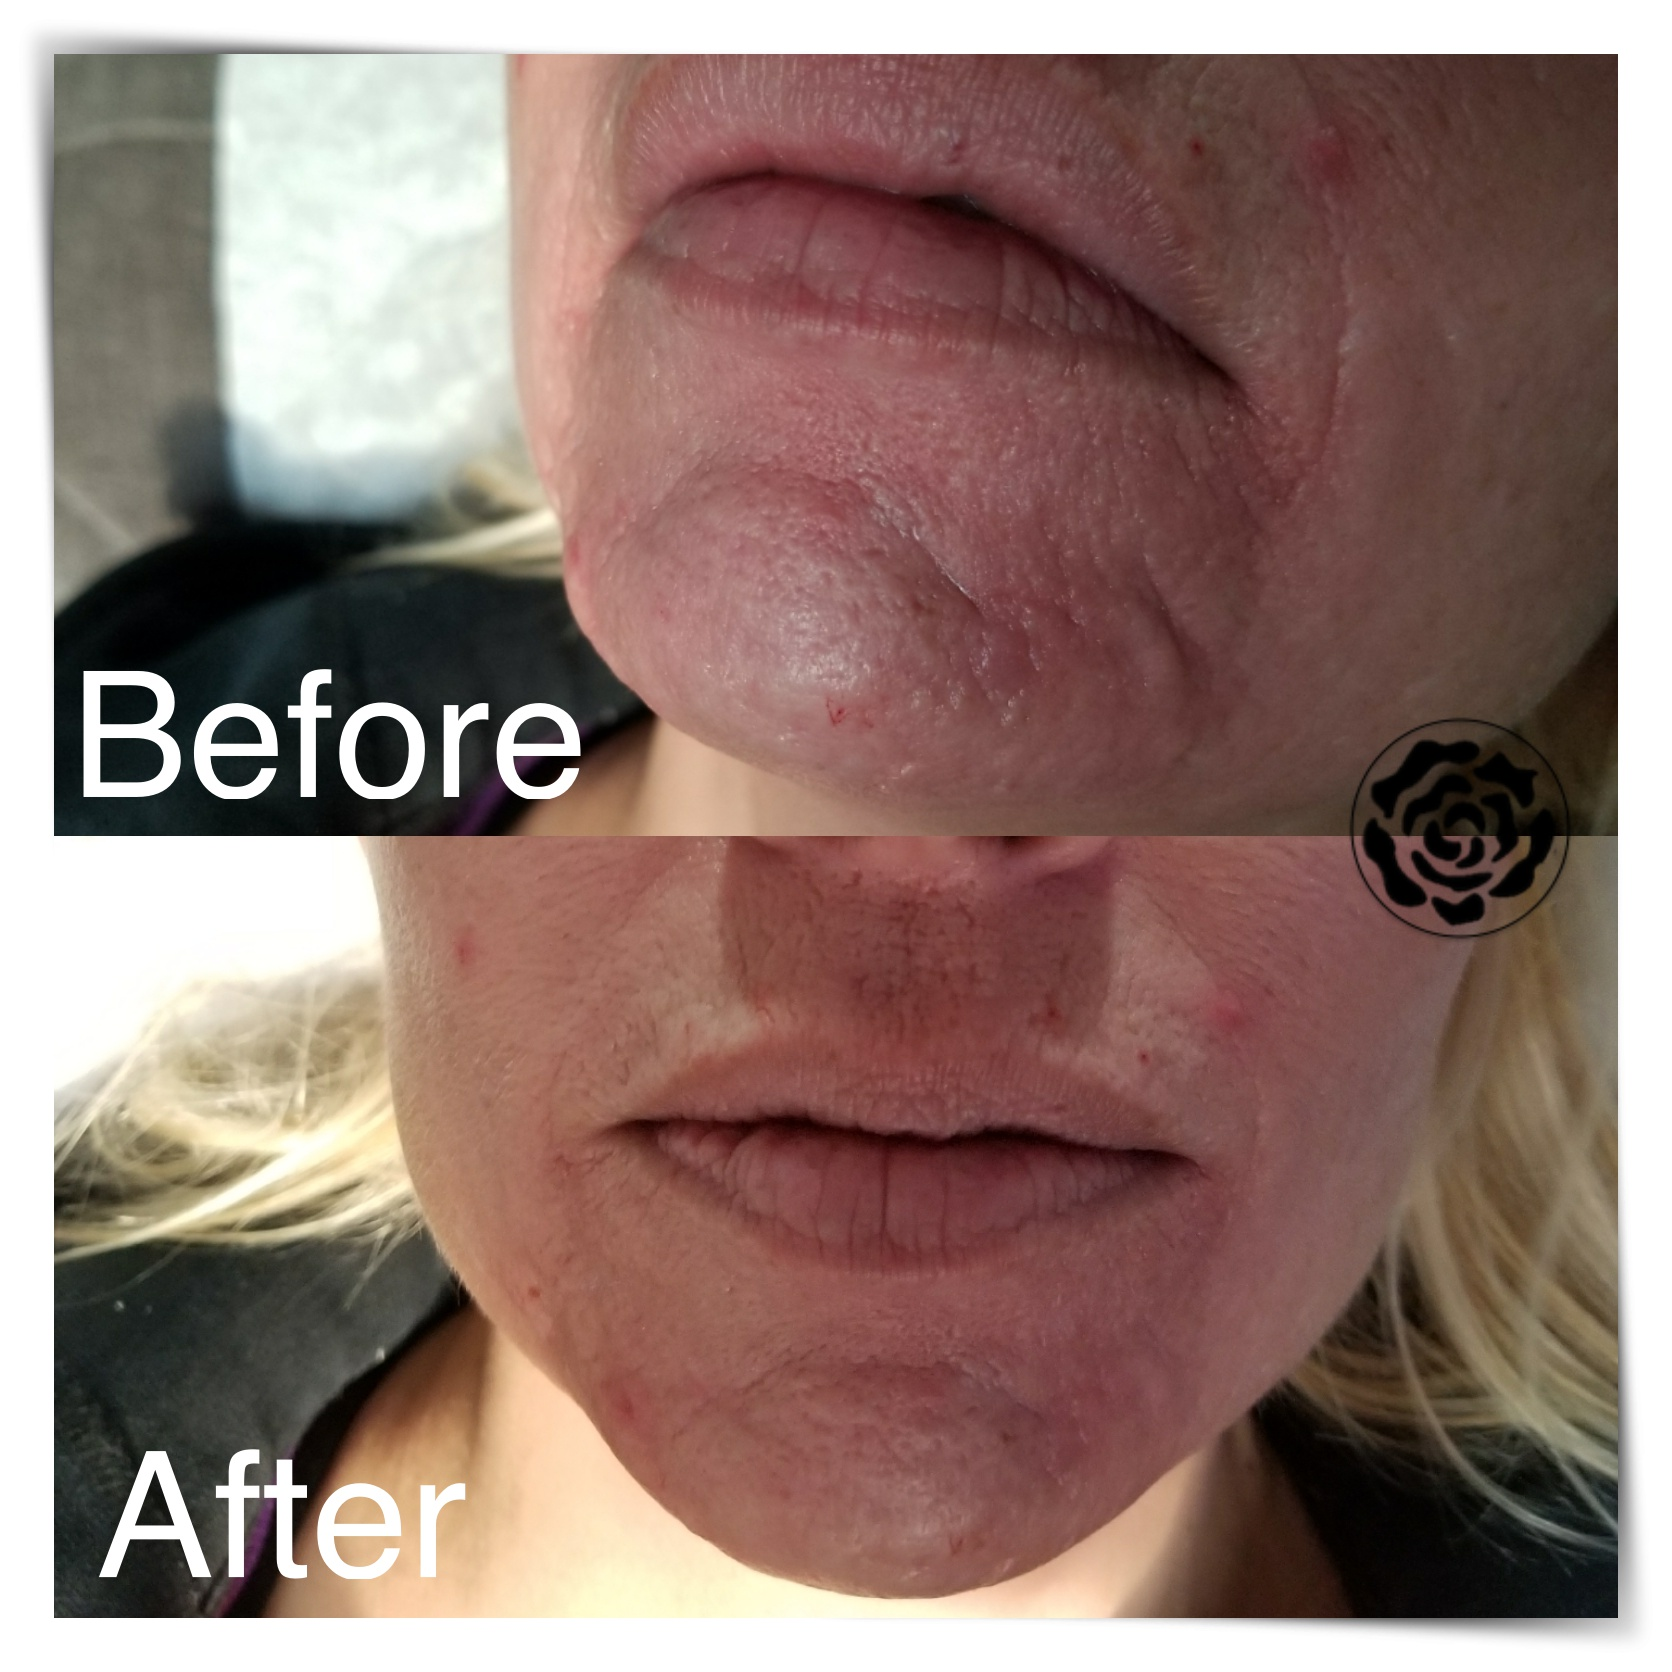 WHAT: Dermal Filler    WHERE: Chin/Fine lines    WHEN: Immediate effects, lasts 9 months +    HOW: Injected by experienced practitioner, no down-time    WHY: For a rehydrated and refreshed/youthful appearance as well as a more defined facial structure